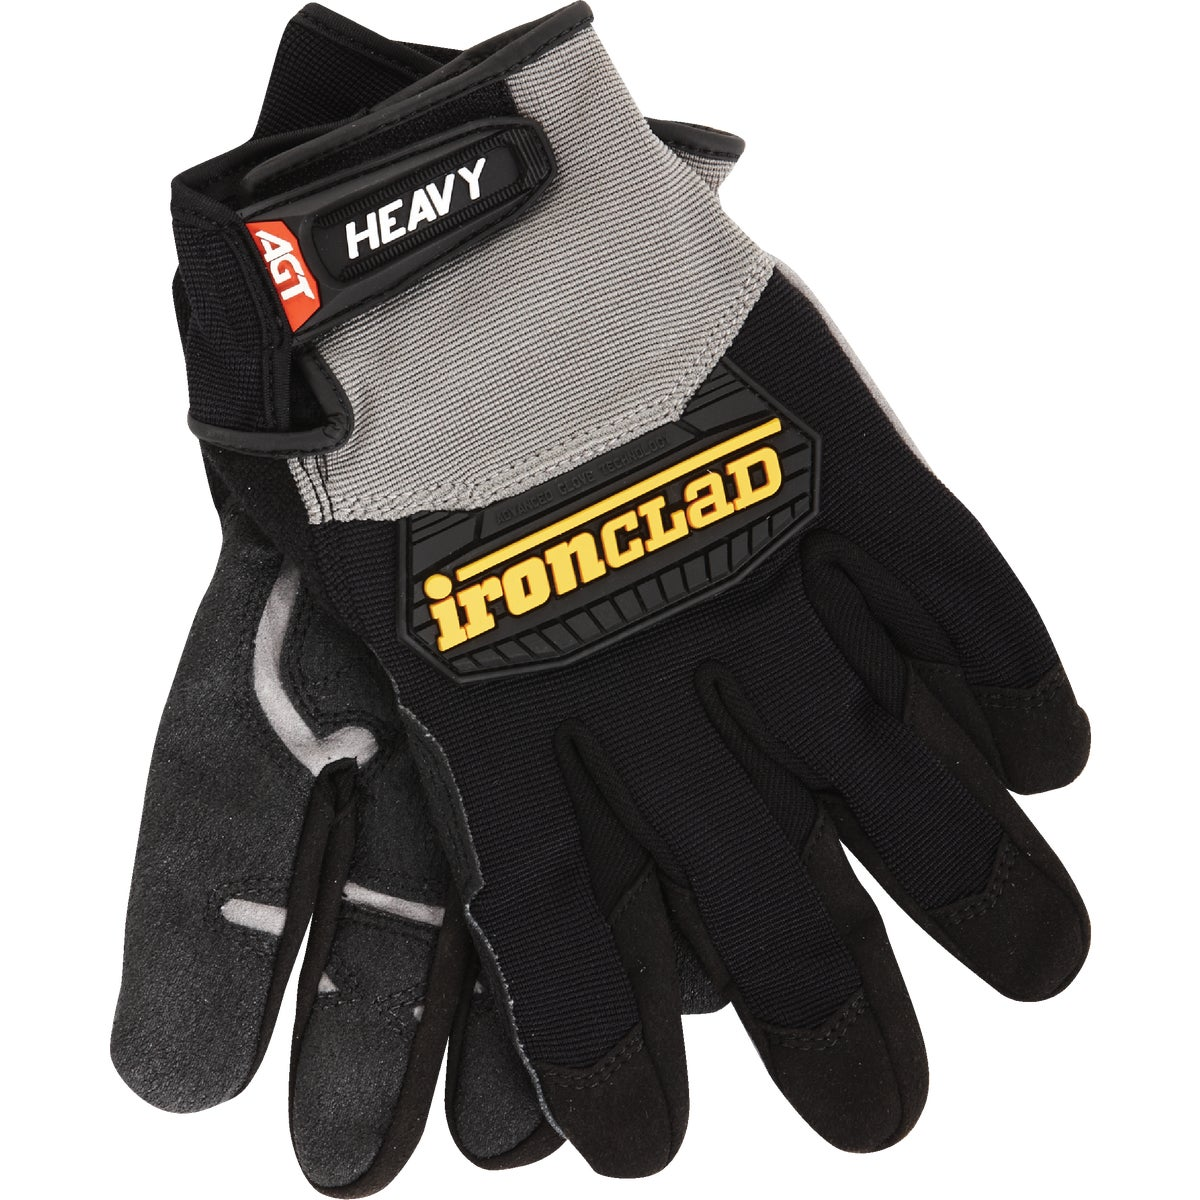 MED HEAVY UTILITY GLOVE